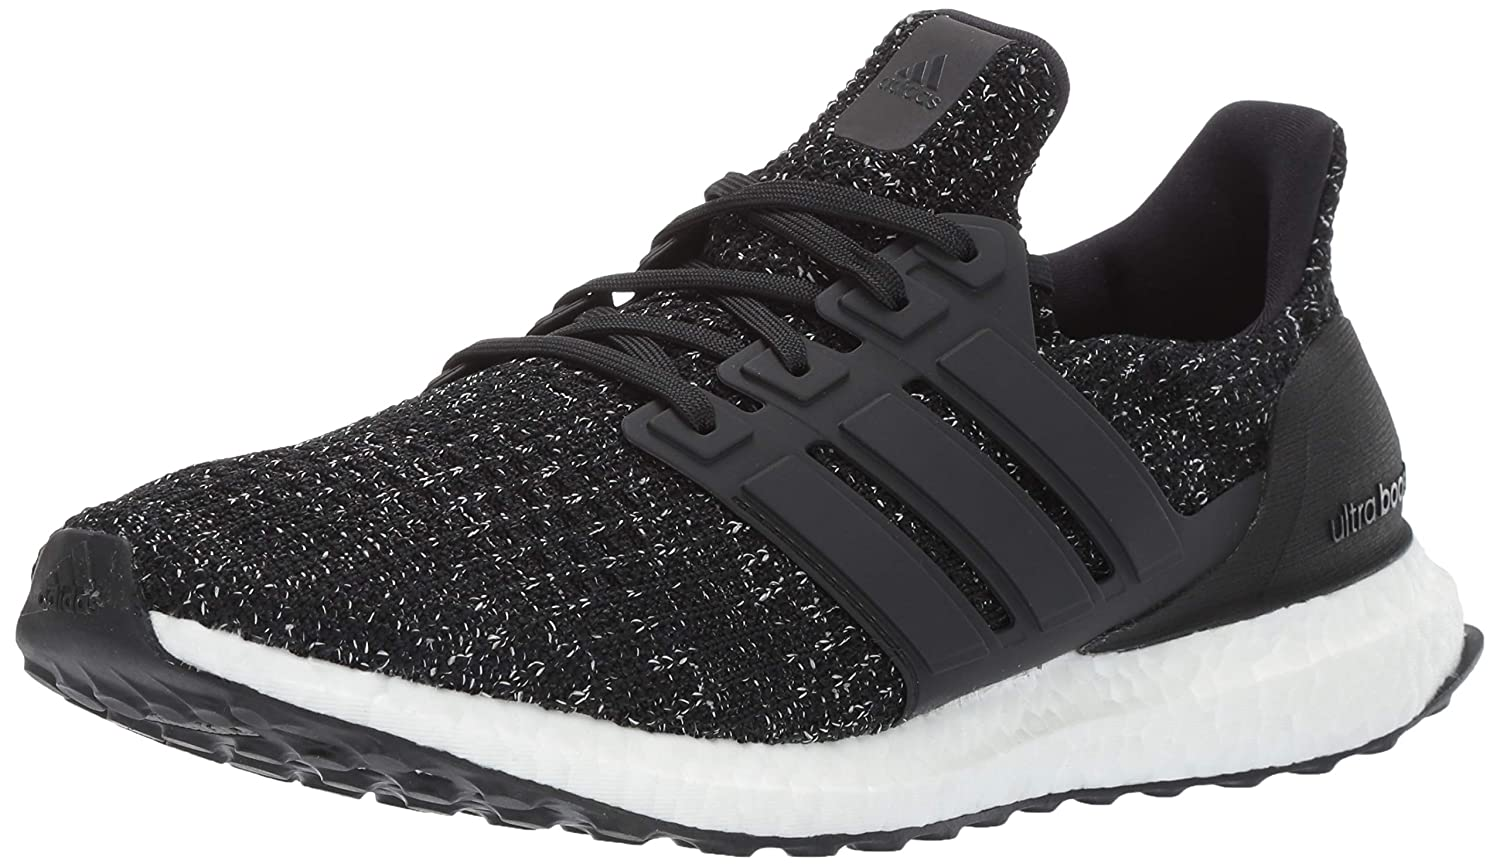 new product 0fa15 05c37 Amazon.com   adidas Performance Men s Ultra Boost M Running Shoe   Road  Running